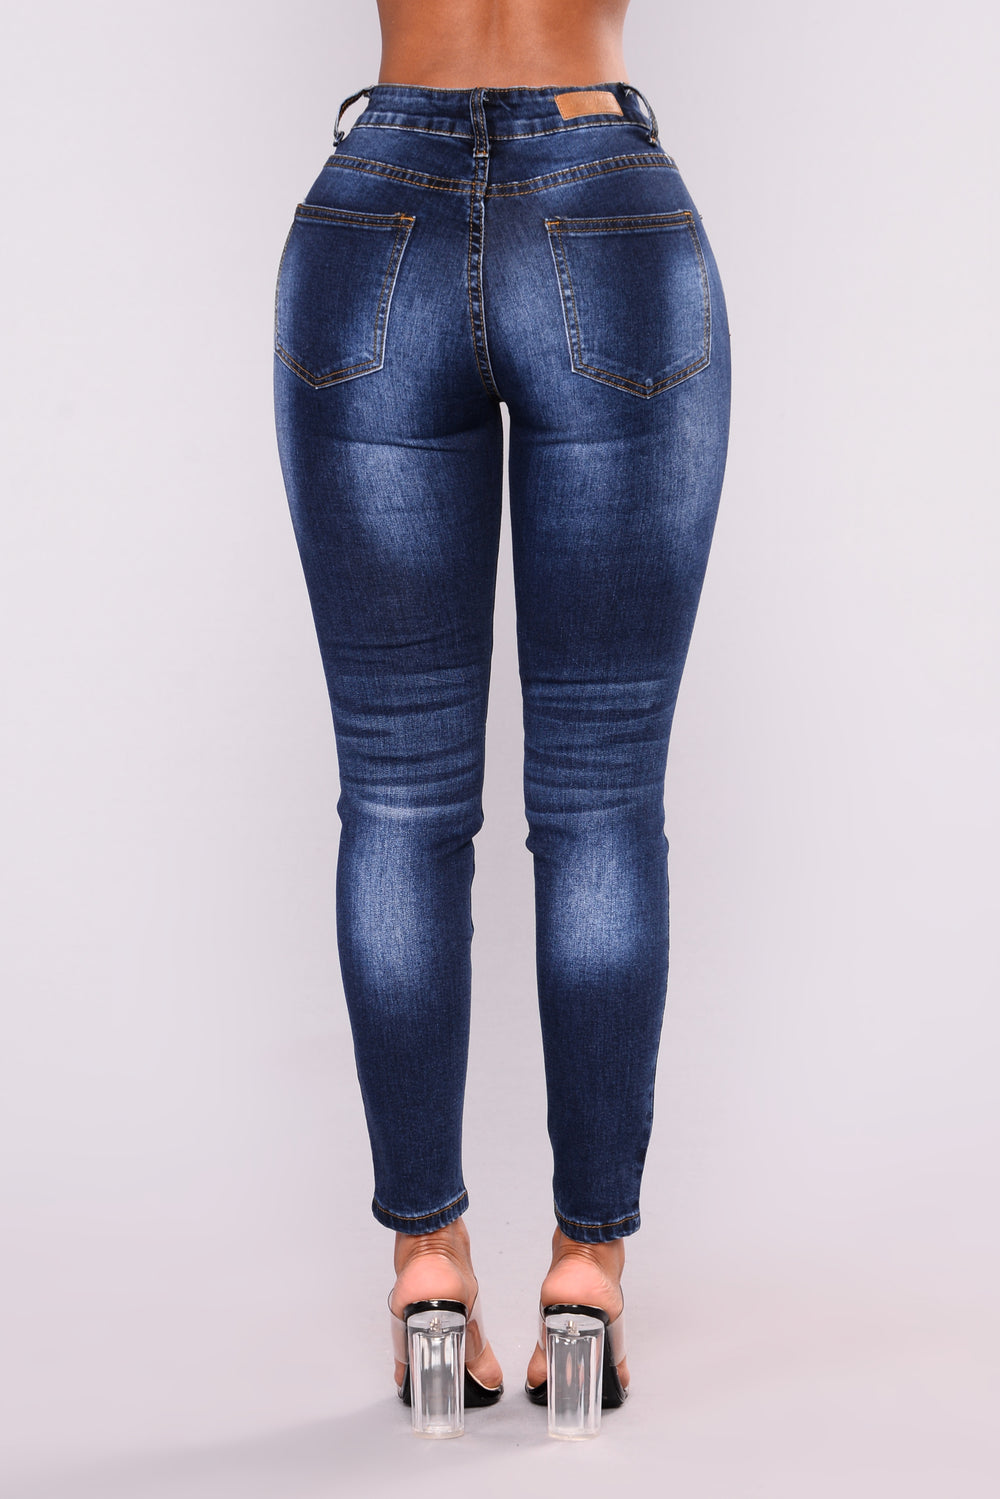 Young And Broke Ankle Jeans - Dark Denim